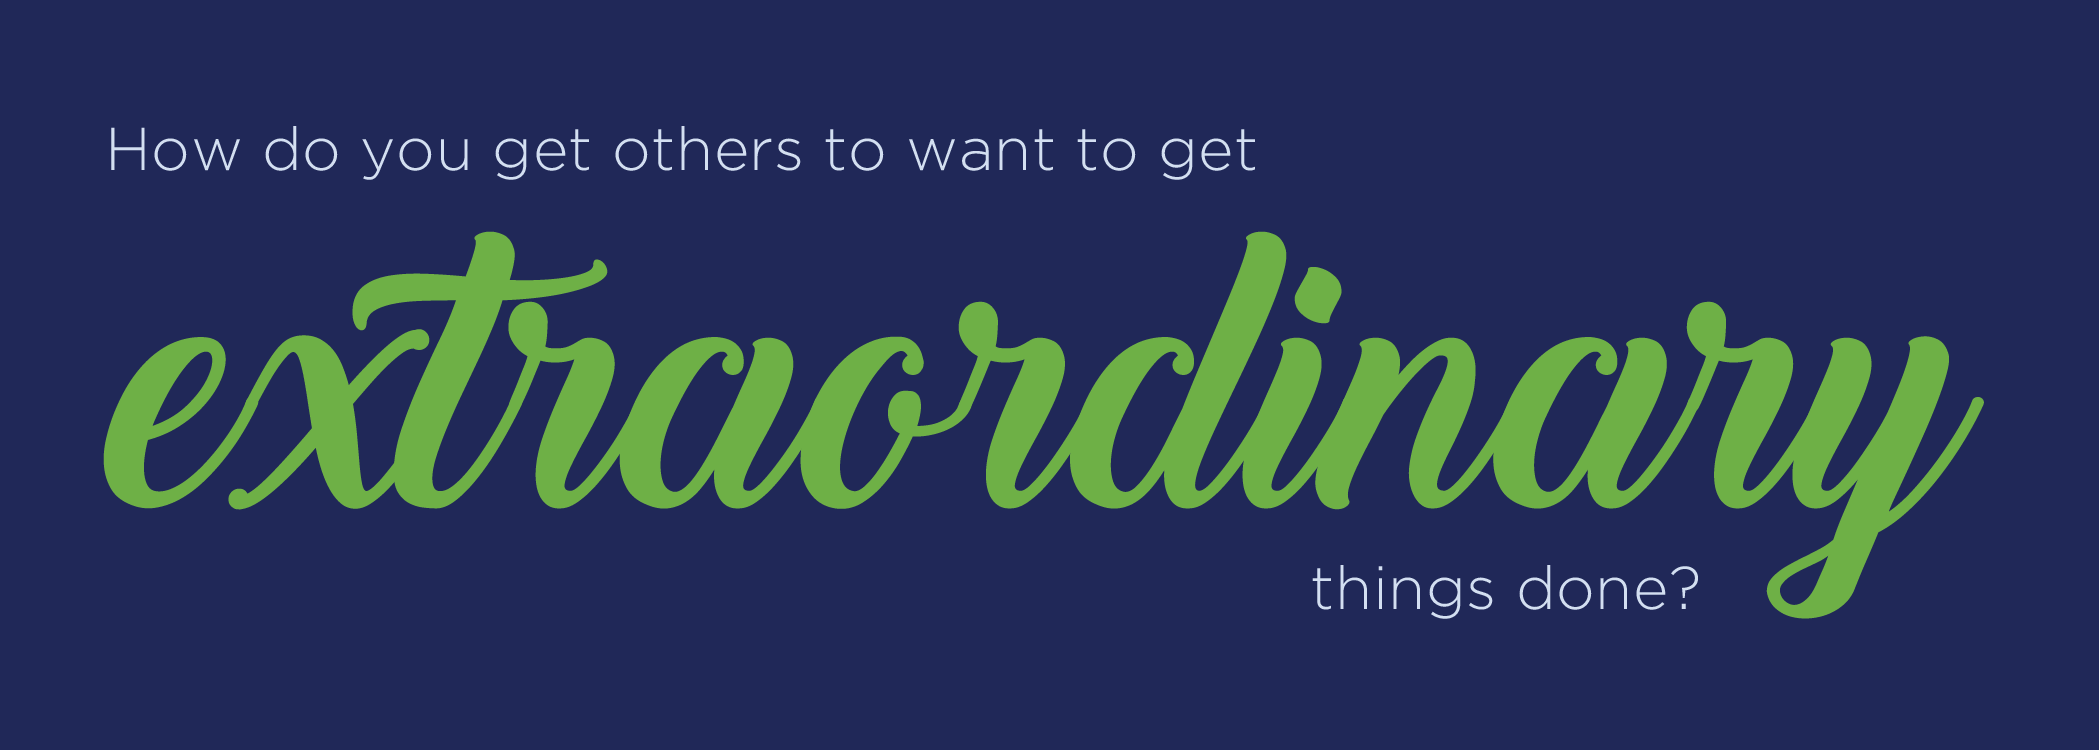 How do you get others to want to get extraordinary things done?